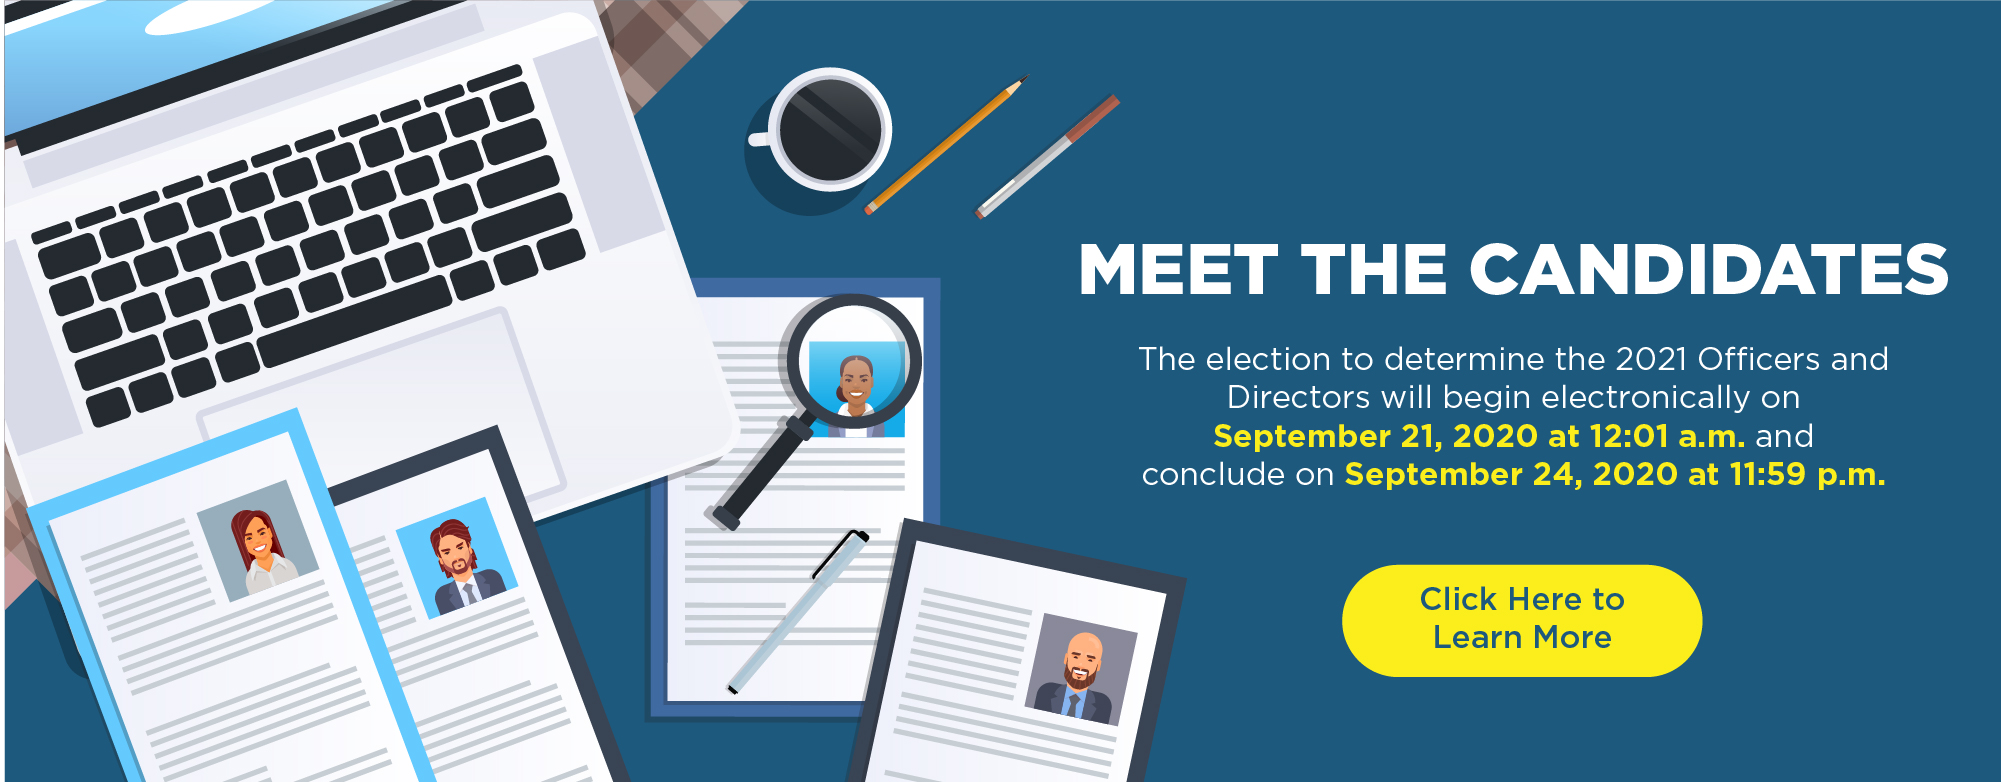 2021 Meet the Candidates | The election to determine the 2021 Officers and Directors will begin electronically on Sept. 21 and conclude on Sept. 24